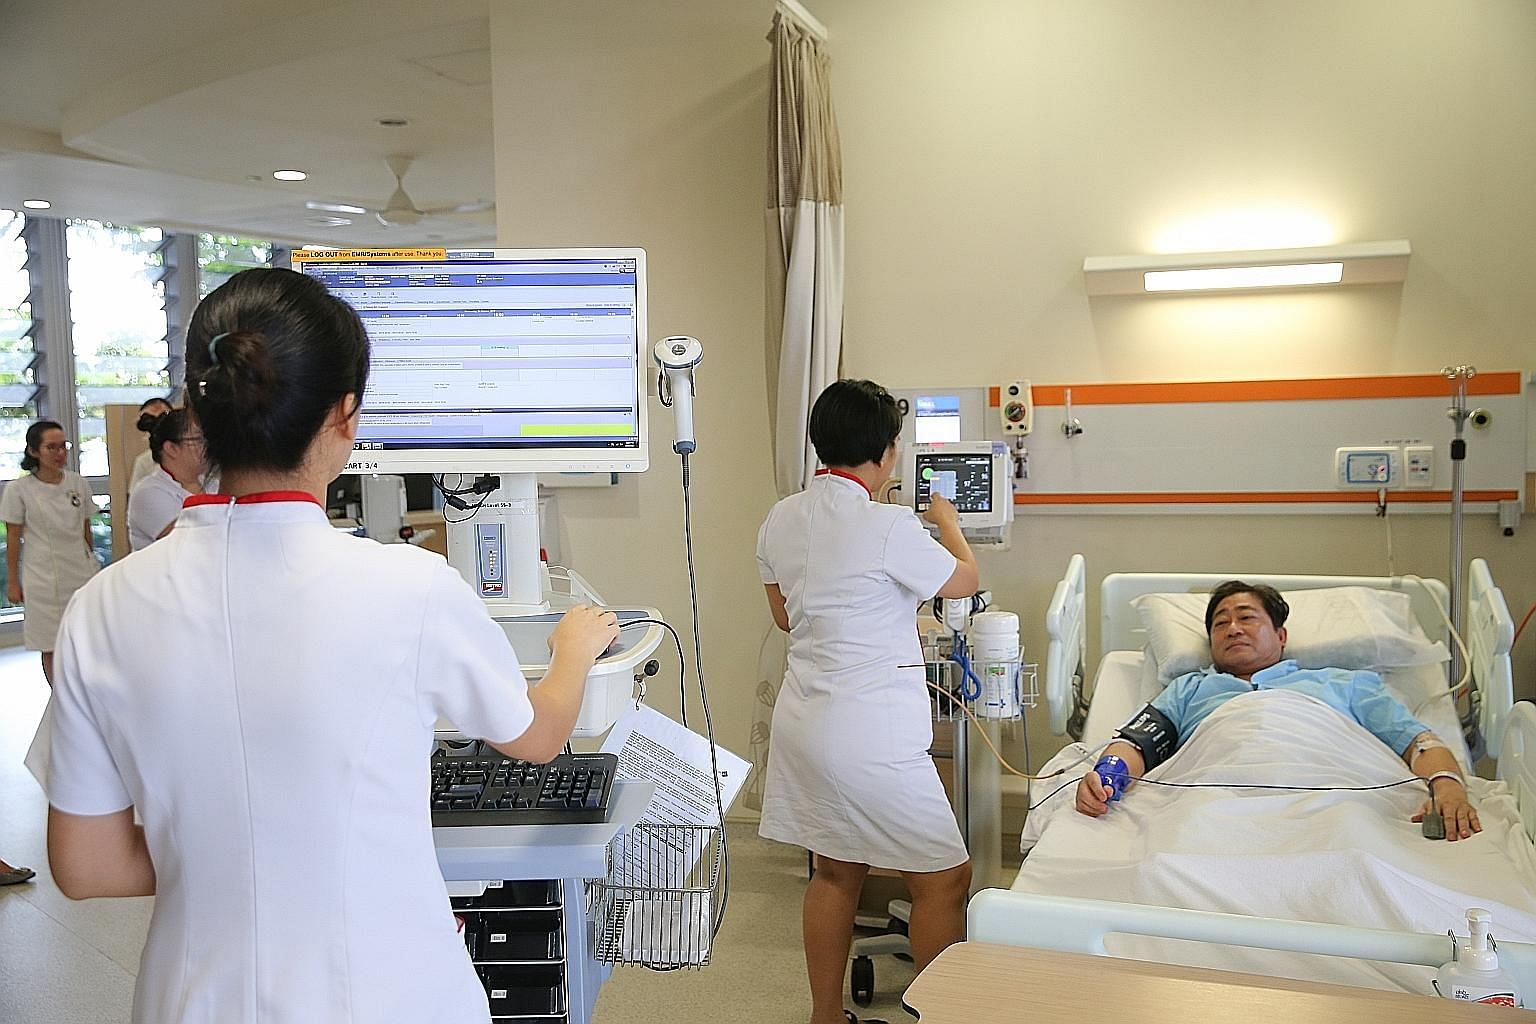 """A nurse uses the """"Computer on Wheels"""" with a medication cart. It is able to access a patient's records and track his vital signs. Vital signs readings are transmitted wirelessly and captured. This process was traditionally done using pen and paper."""